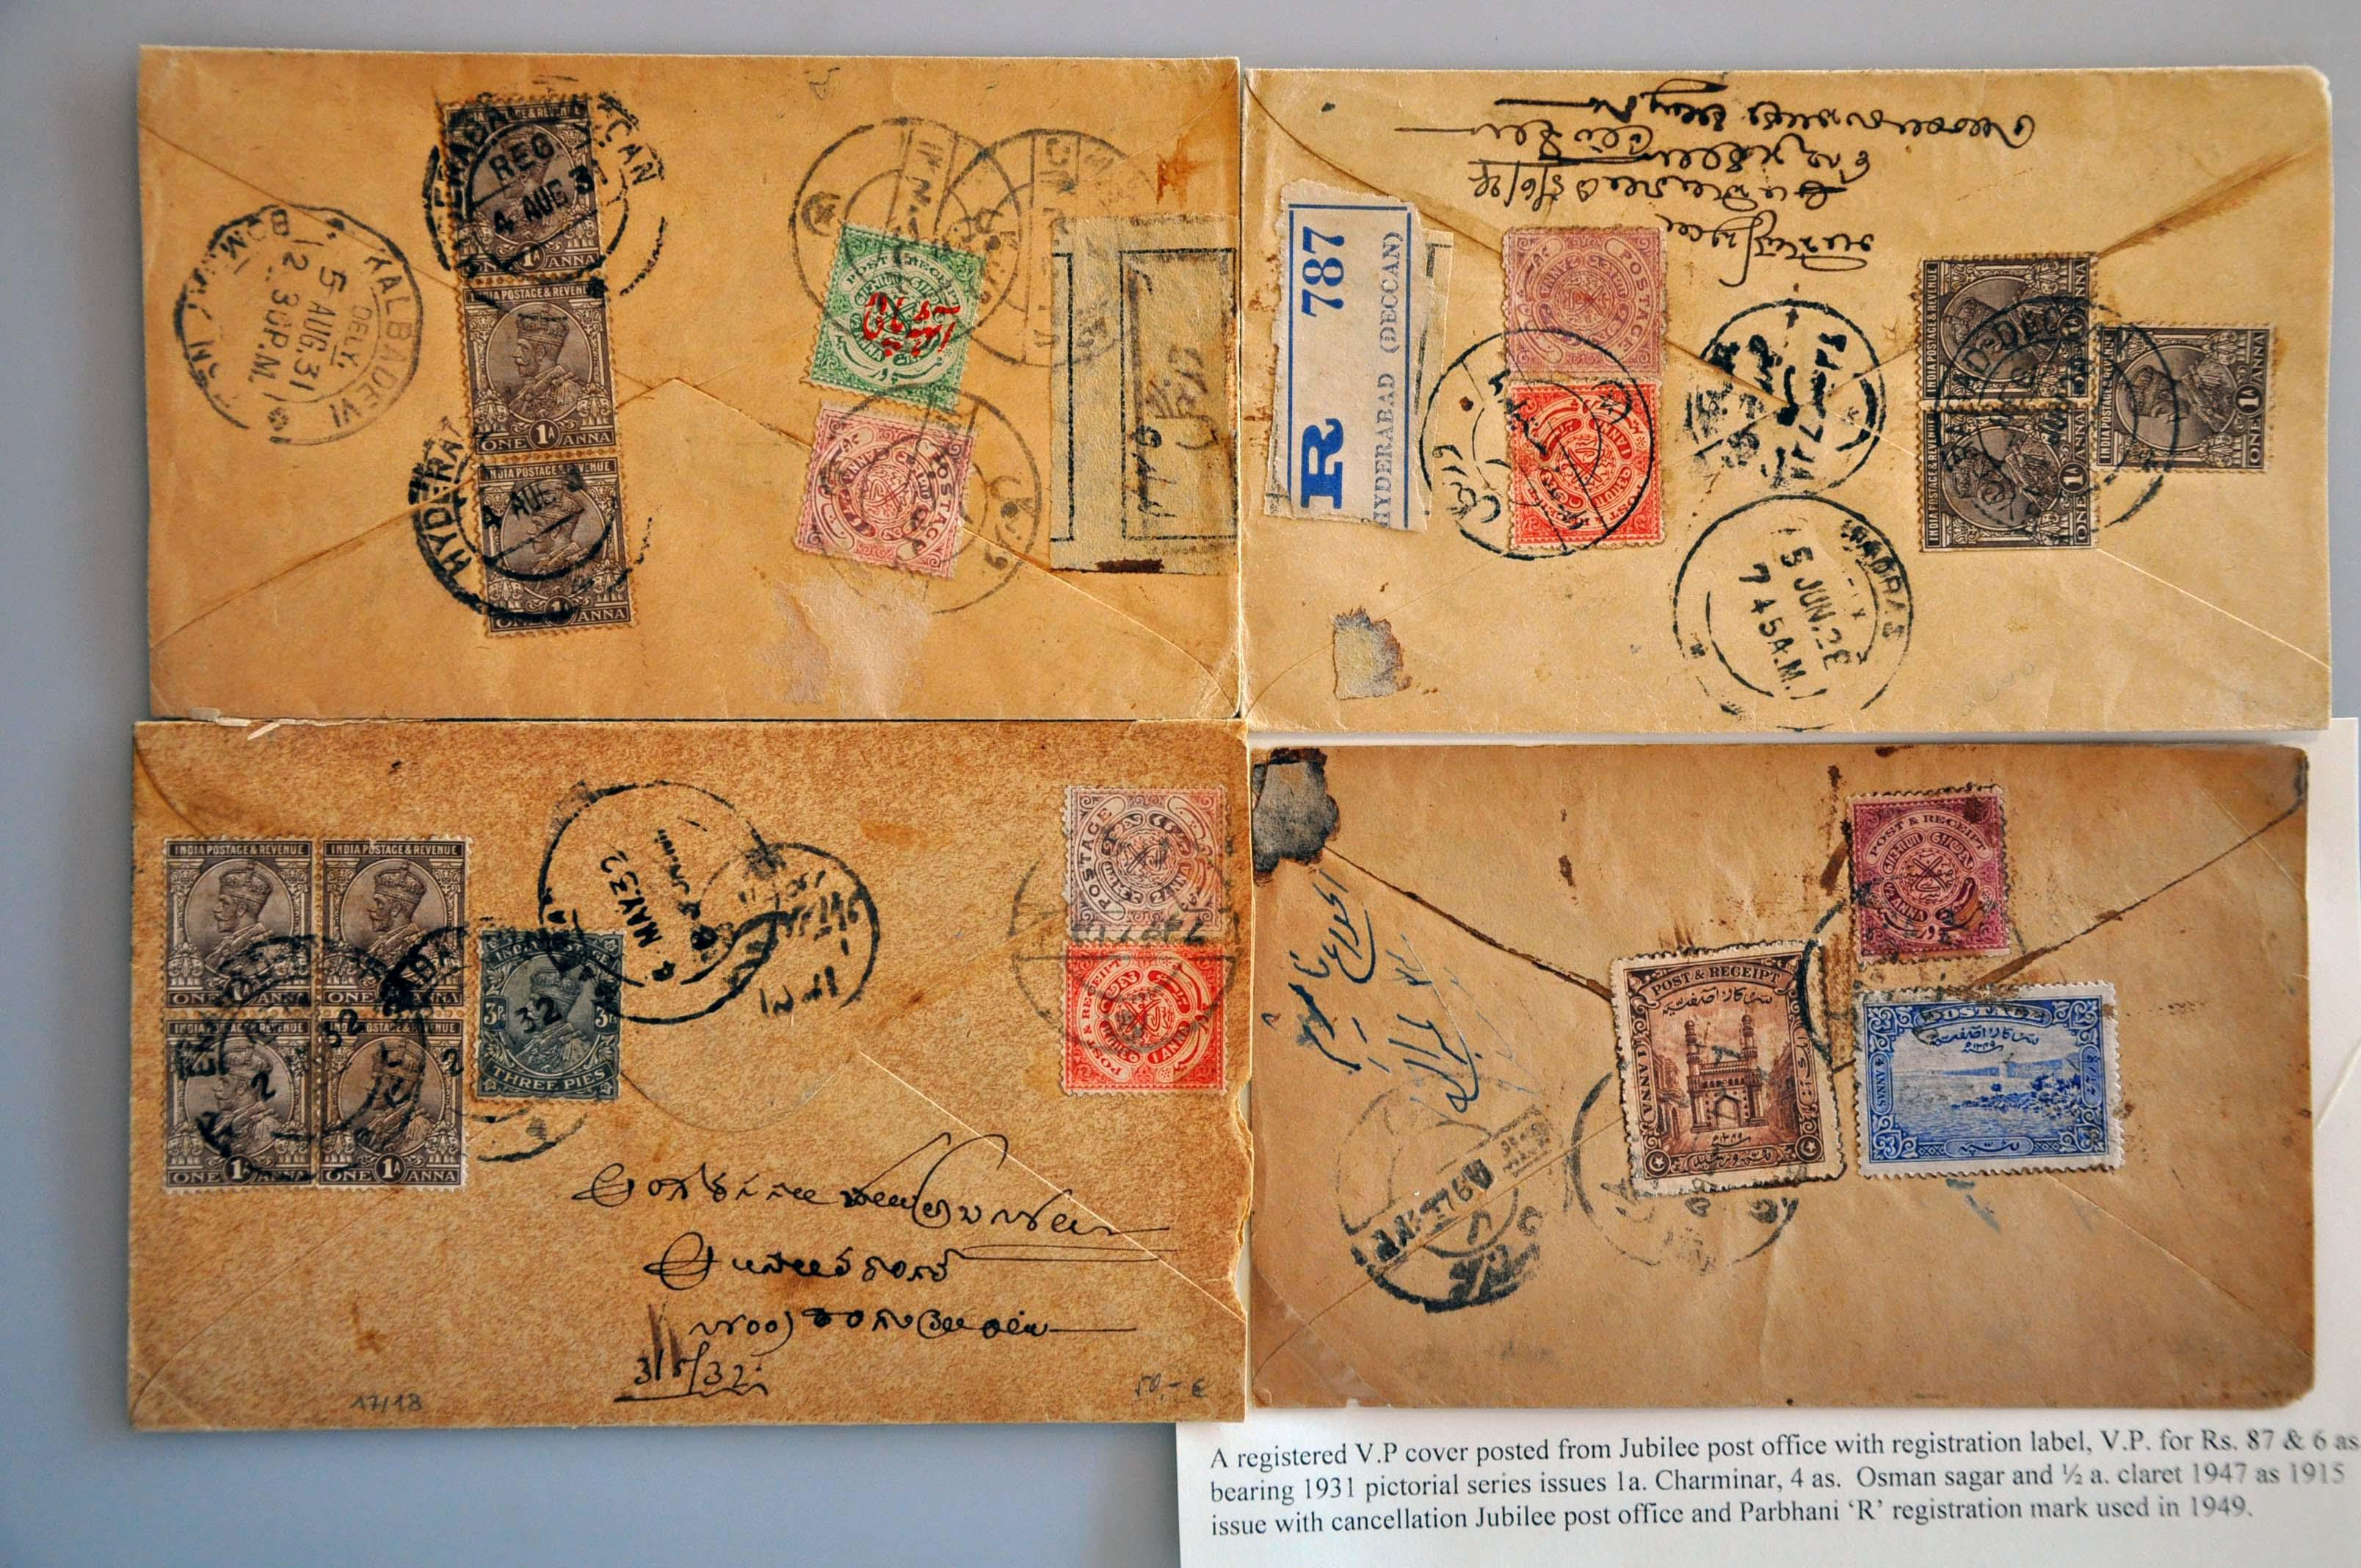 Stamp Auction - Great Britain and former colonies India ... on maharashtra map, indiana county map, indiana state map, tamil nadu map, cape of good hope map, great britain map, brazil map, iran map, india map, european nations map, u.s. regions map, andhra pradesh map, bangladesh map, illinois-indiana map, indian states and capitals, saudi arabia map, french regions map, cyber world map, state capitals map, tonga map,